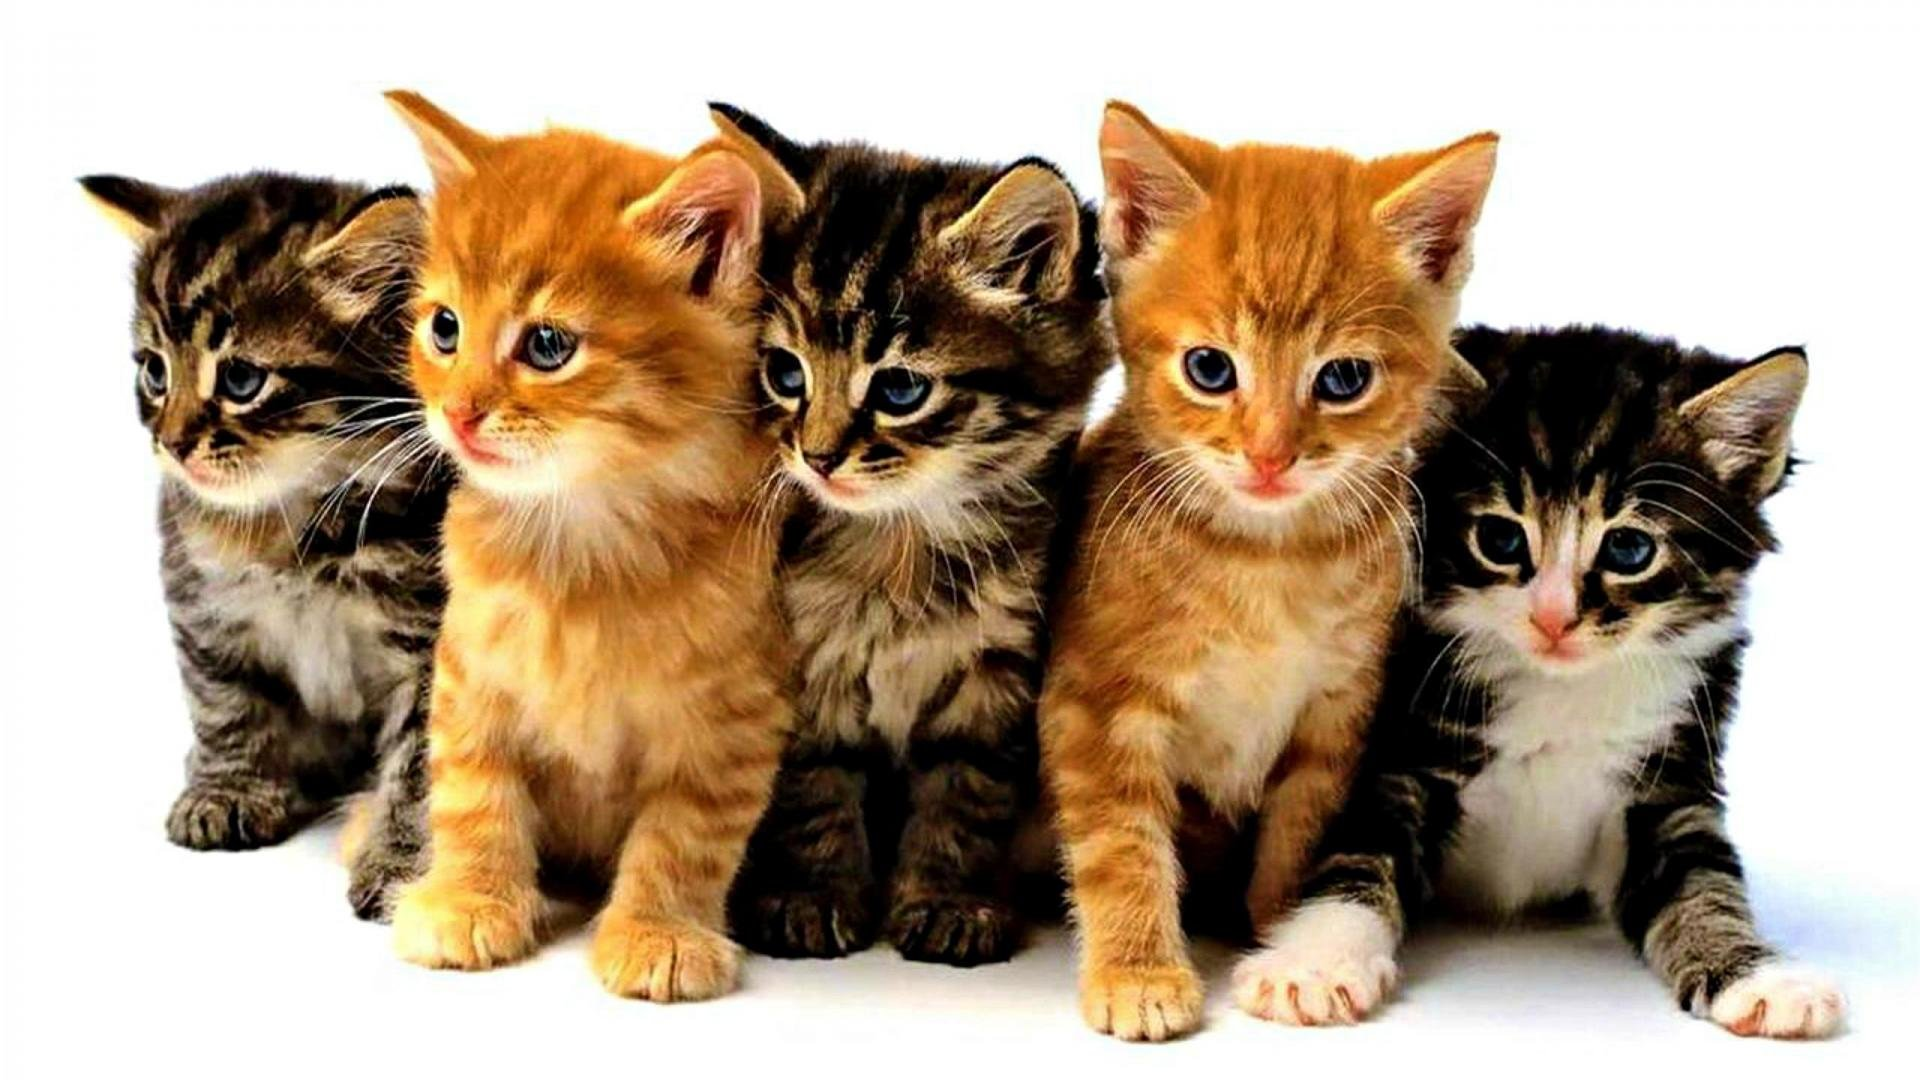 Download 1080p Kitten desktop background ID:429101 for free